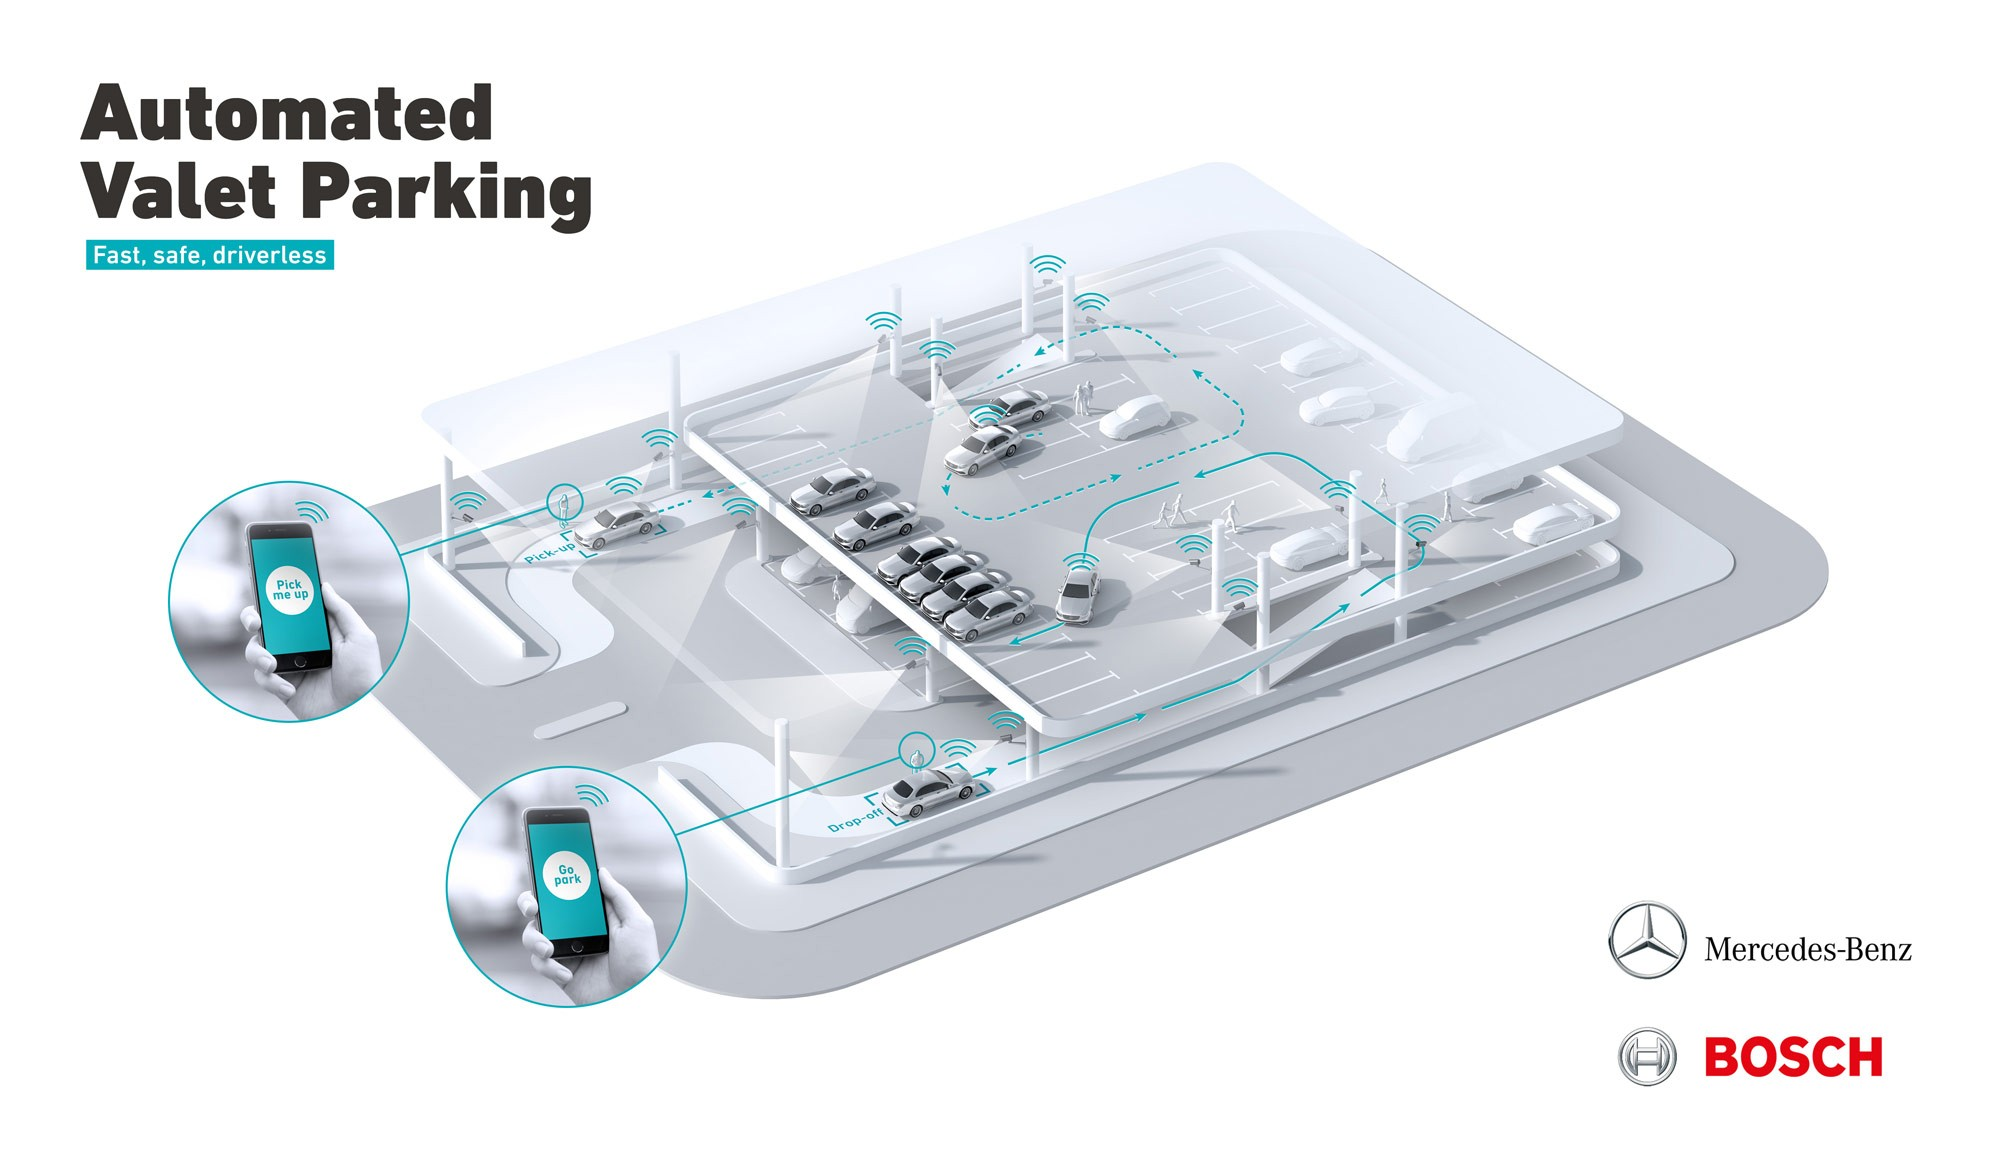 Smart parking allows car park operators to add value to their businesses. The obvious one: Up to 20 percent more cars can be parked in the same building using smart technologies. Picture: Bosch.